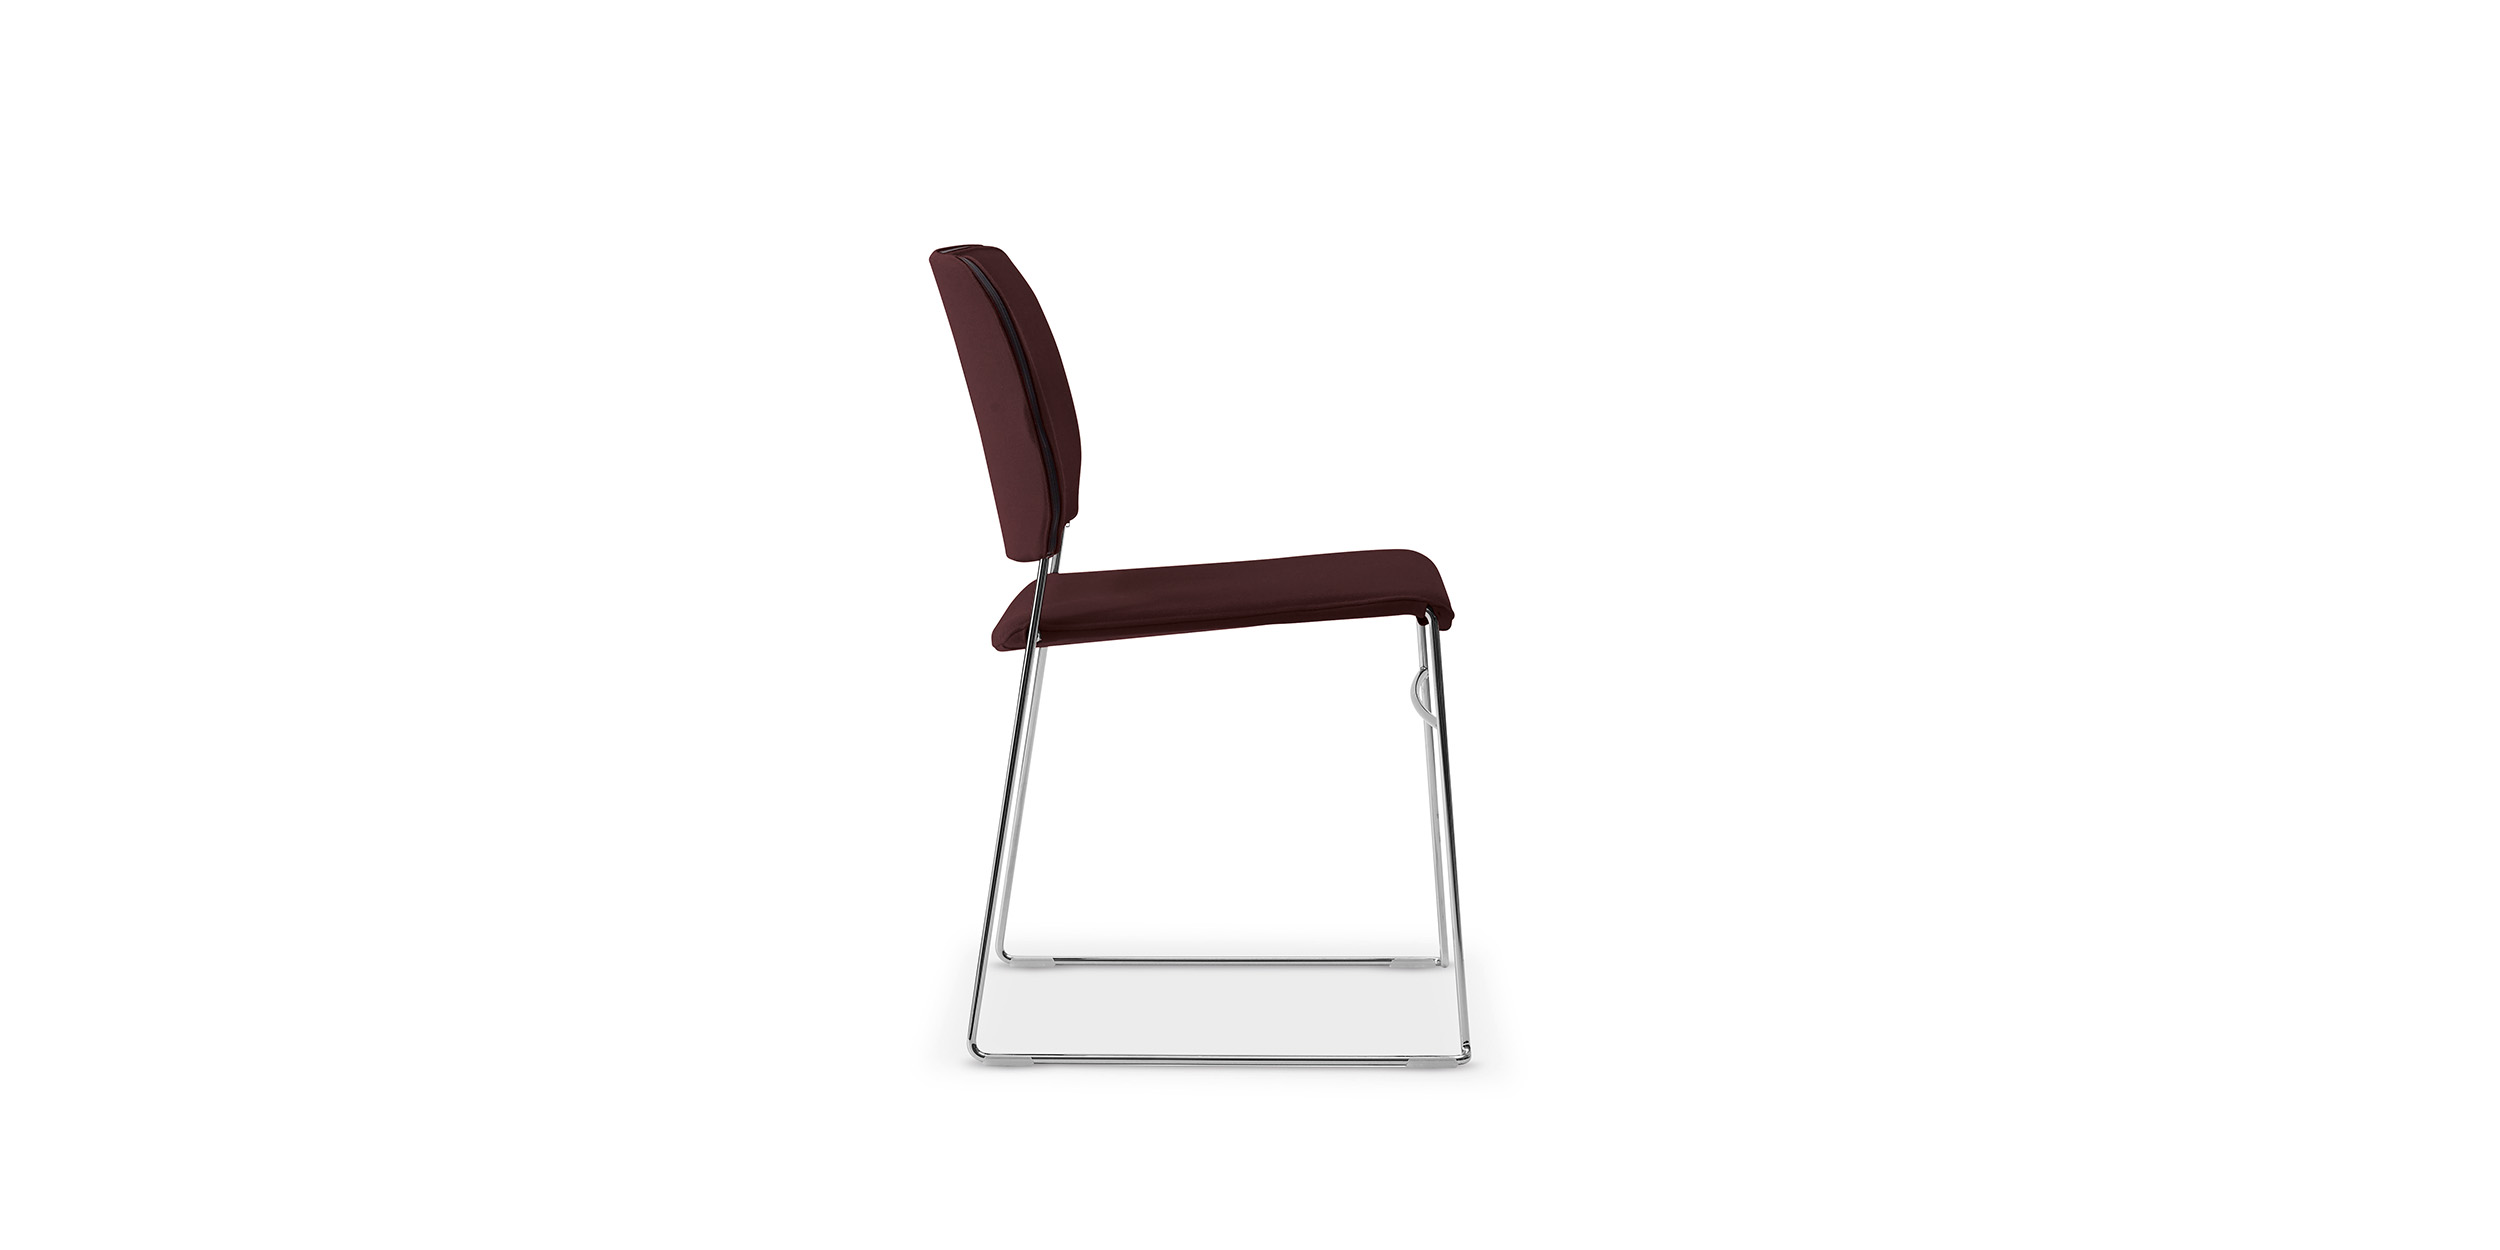 Lite, Stackable chair by Broberg & Ridderstråle